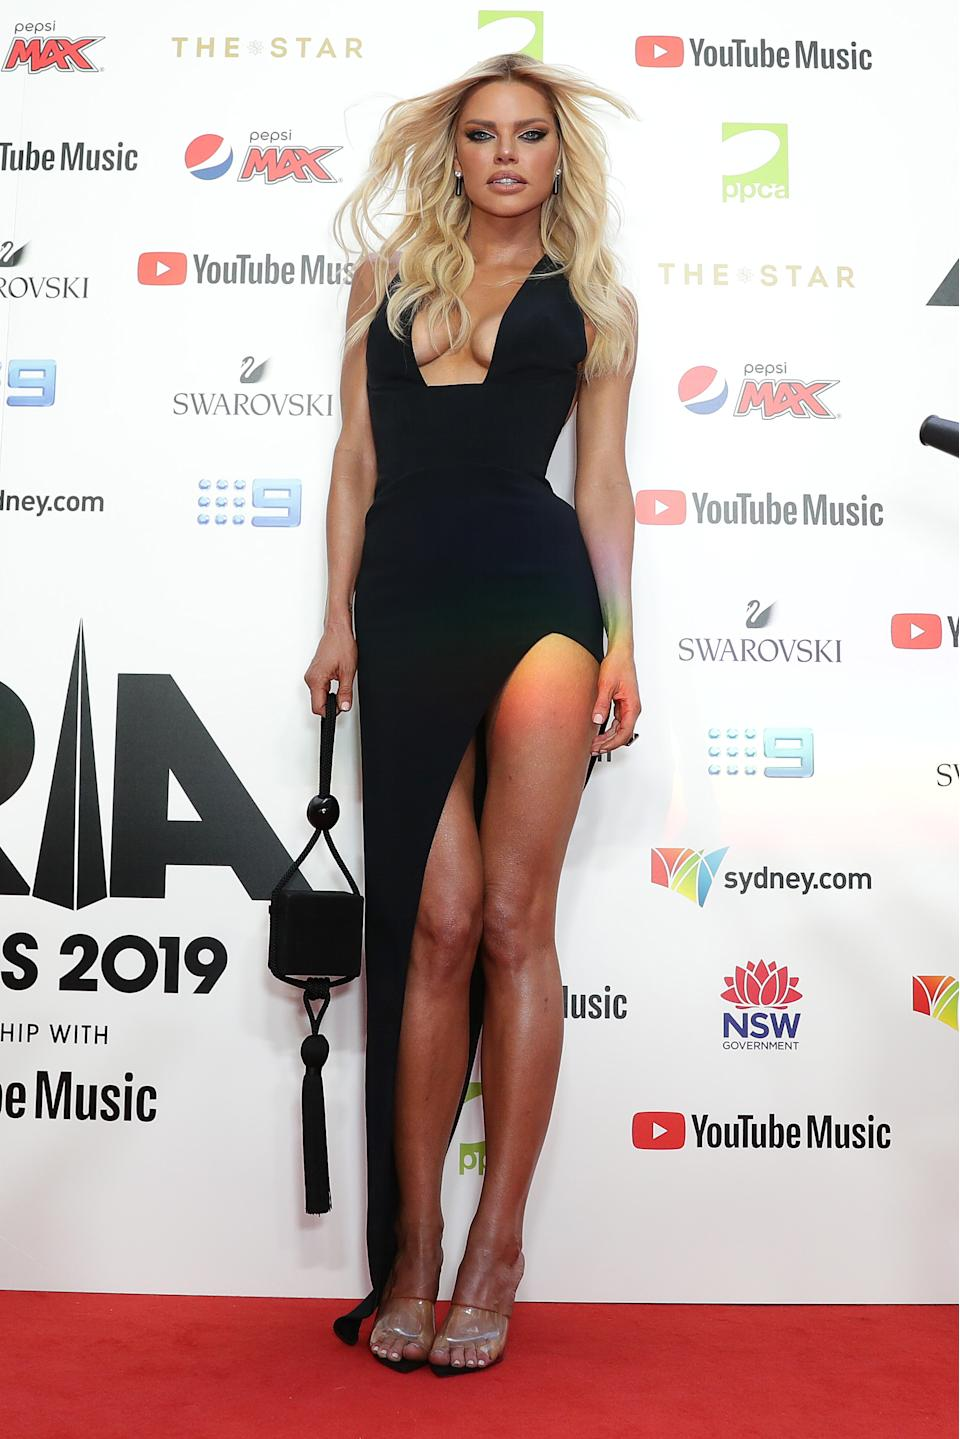 Sophie Monk arrives for the 33rd Annual ARIA Awards 2019 at The Star on November 27, 2019 in Sydney, Australia.